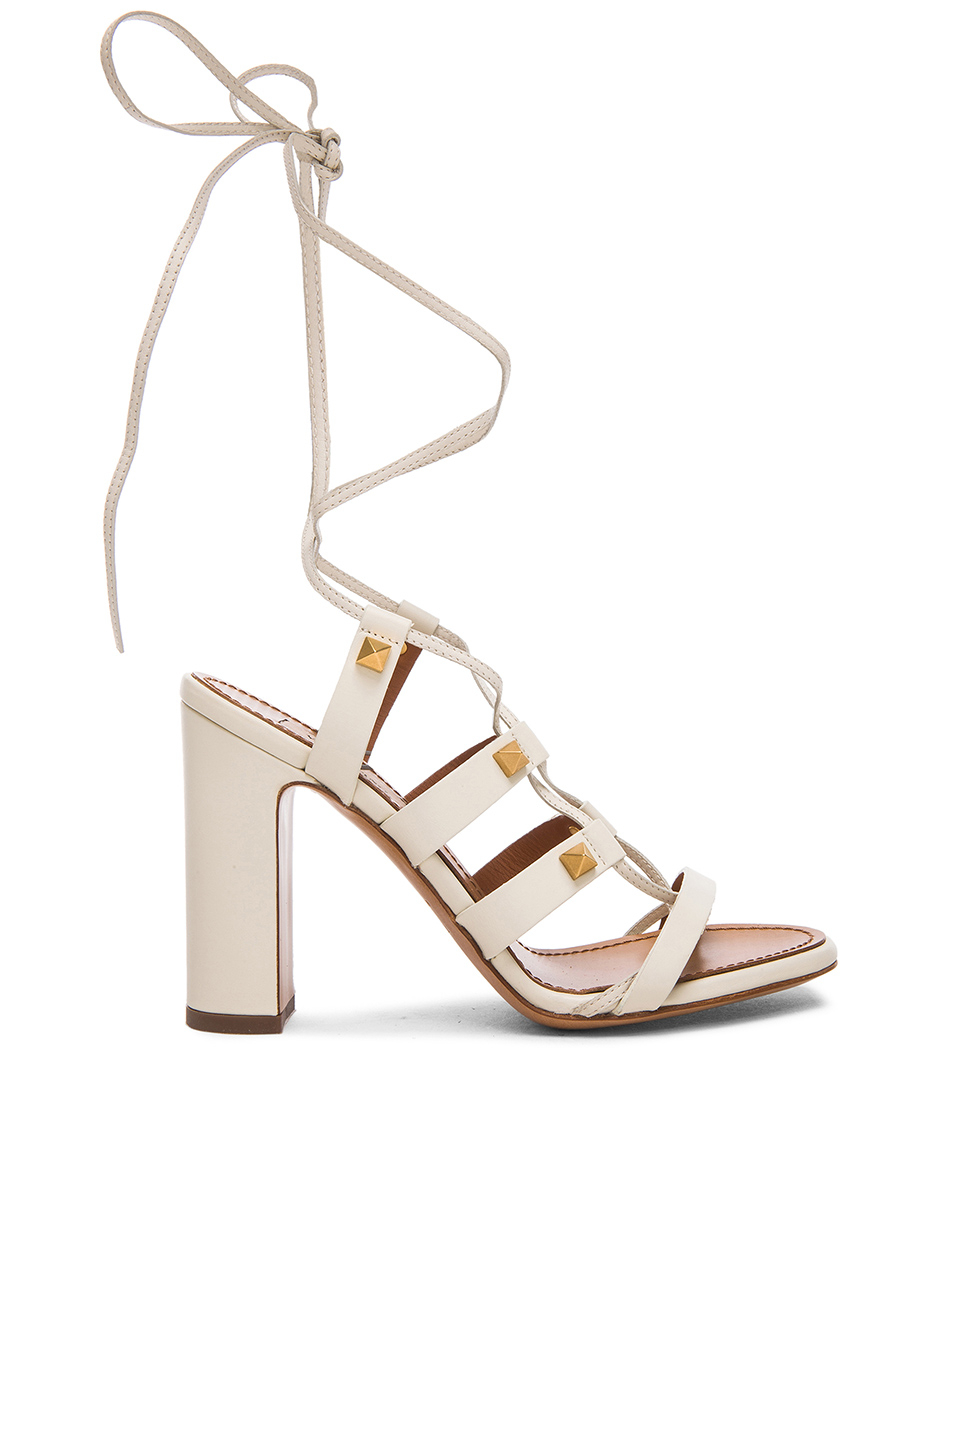 4828cc2b2c4 Lyst - Valentino Rockstud Leather Gladiator Heels T.100 in White